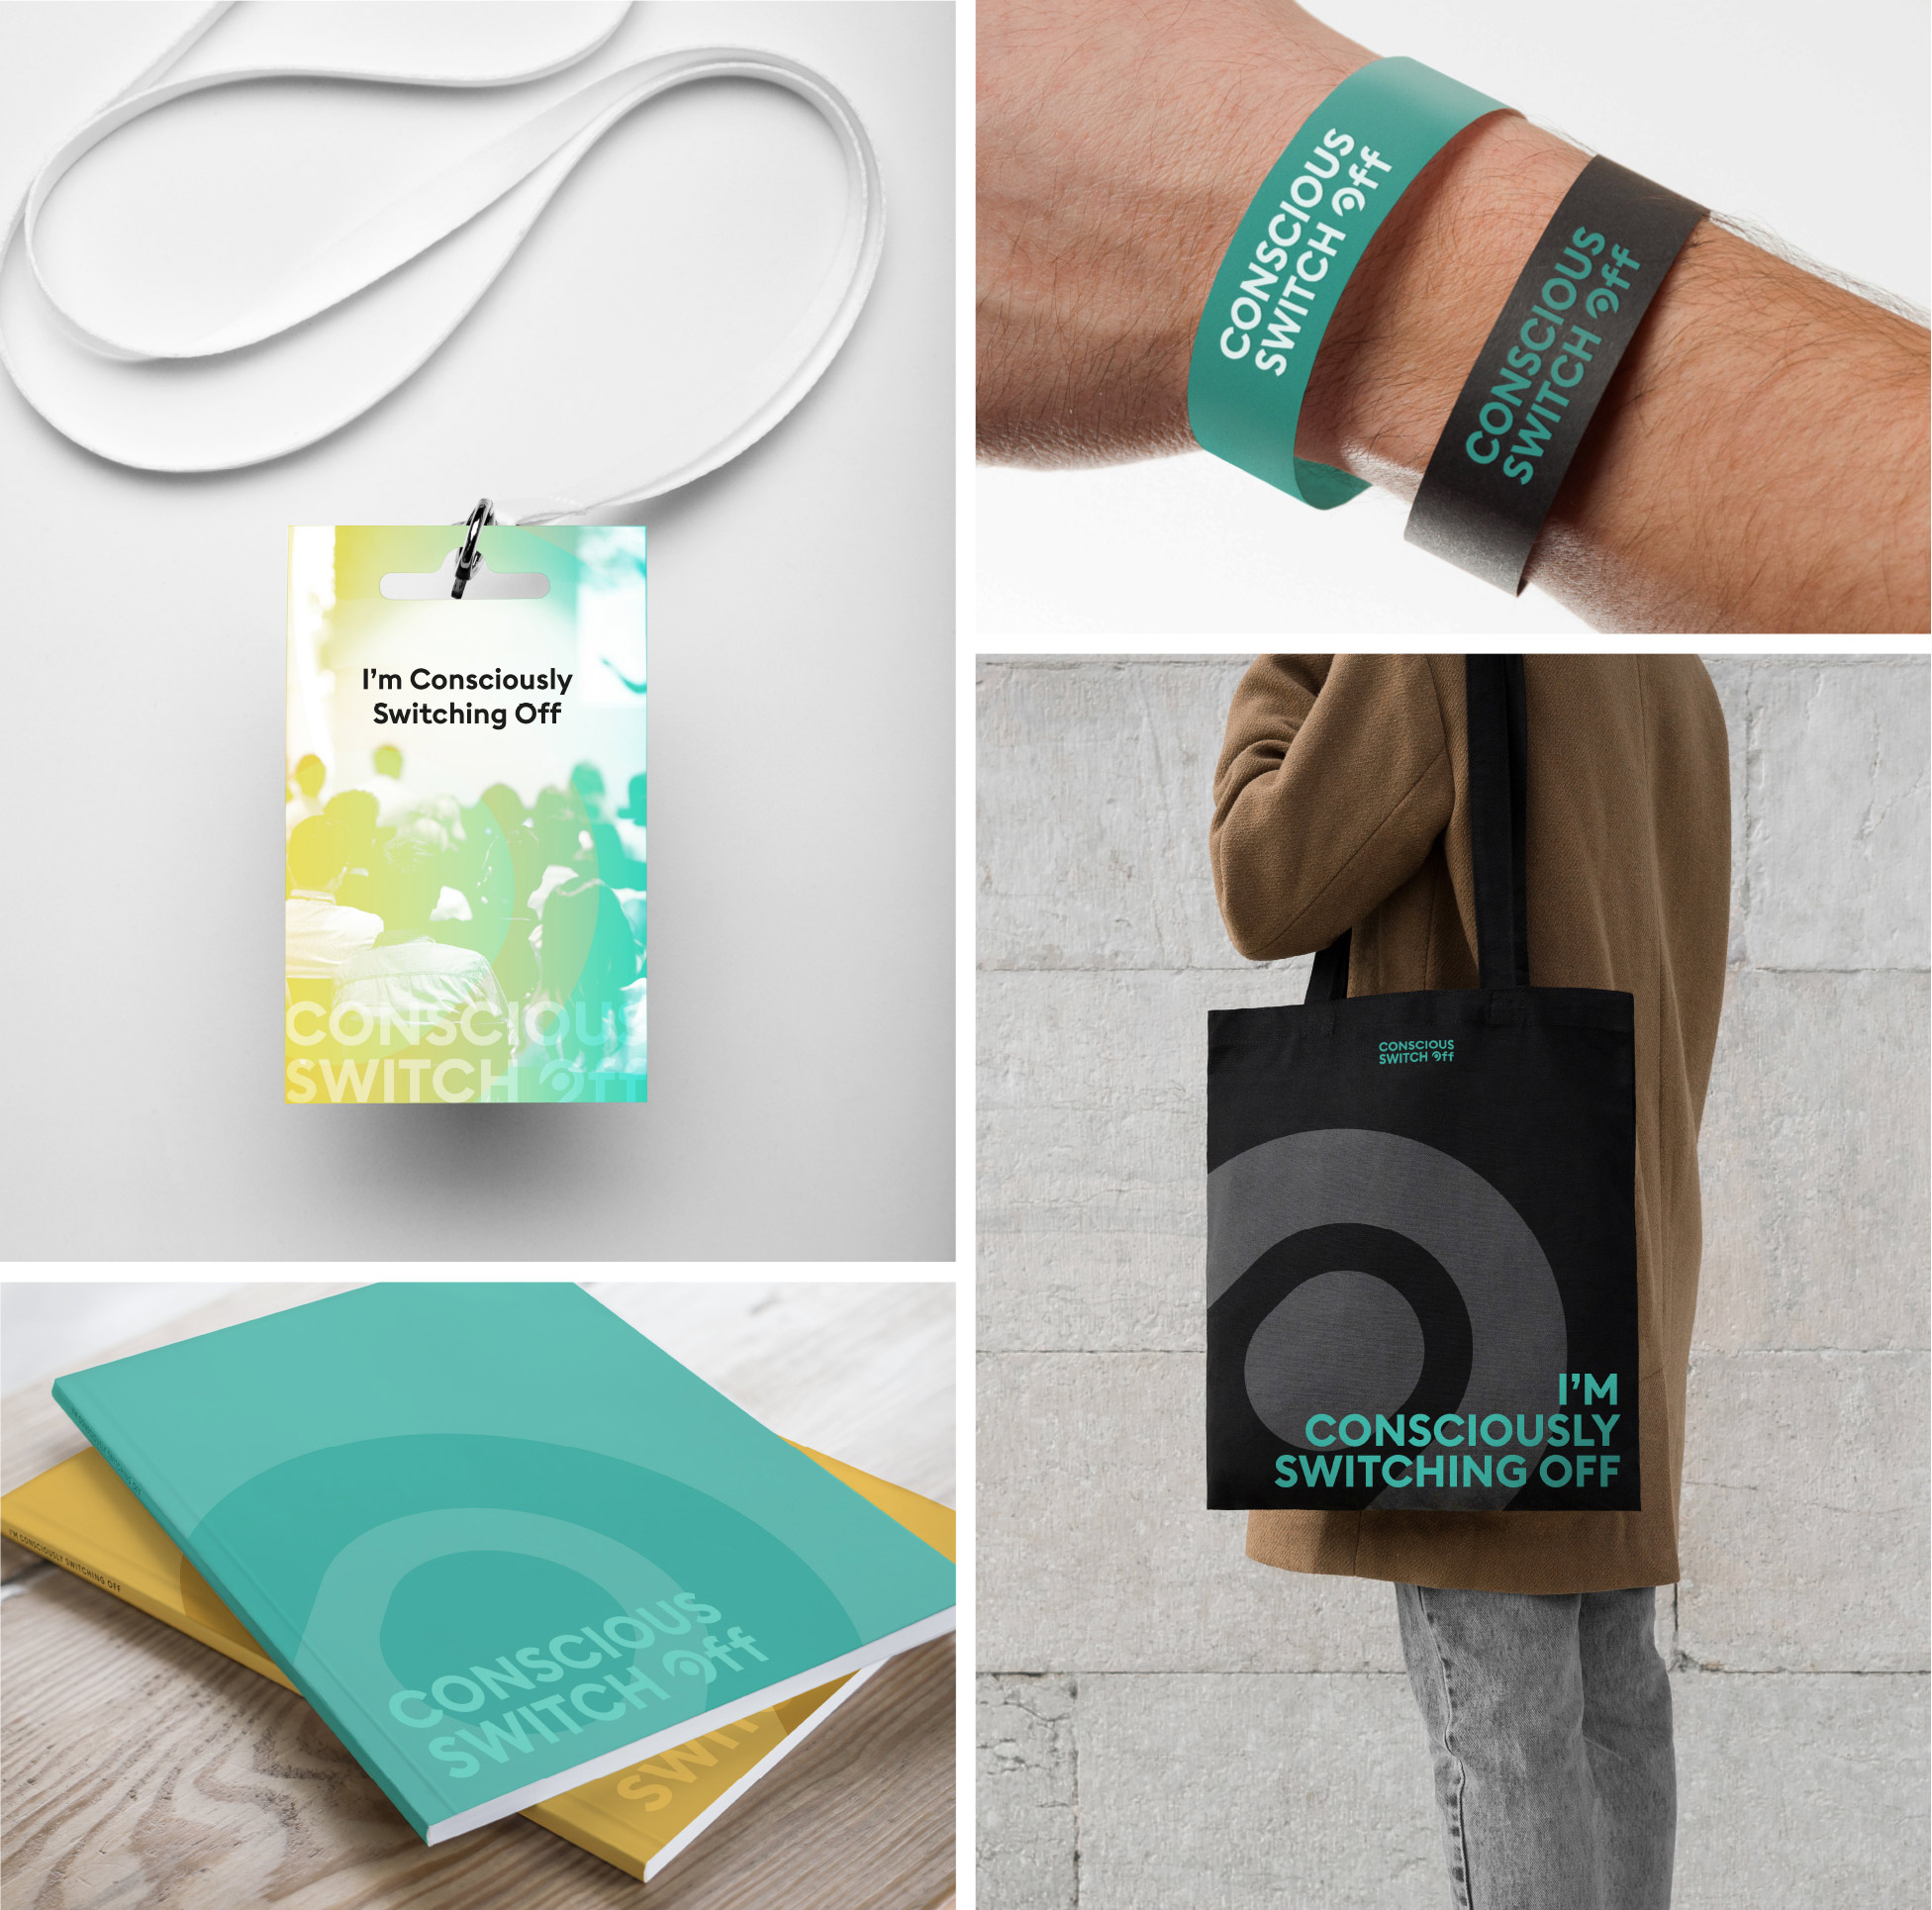 Branded items - Lanyards, bags, wristbands and brochures